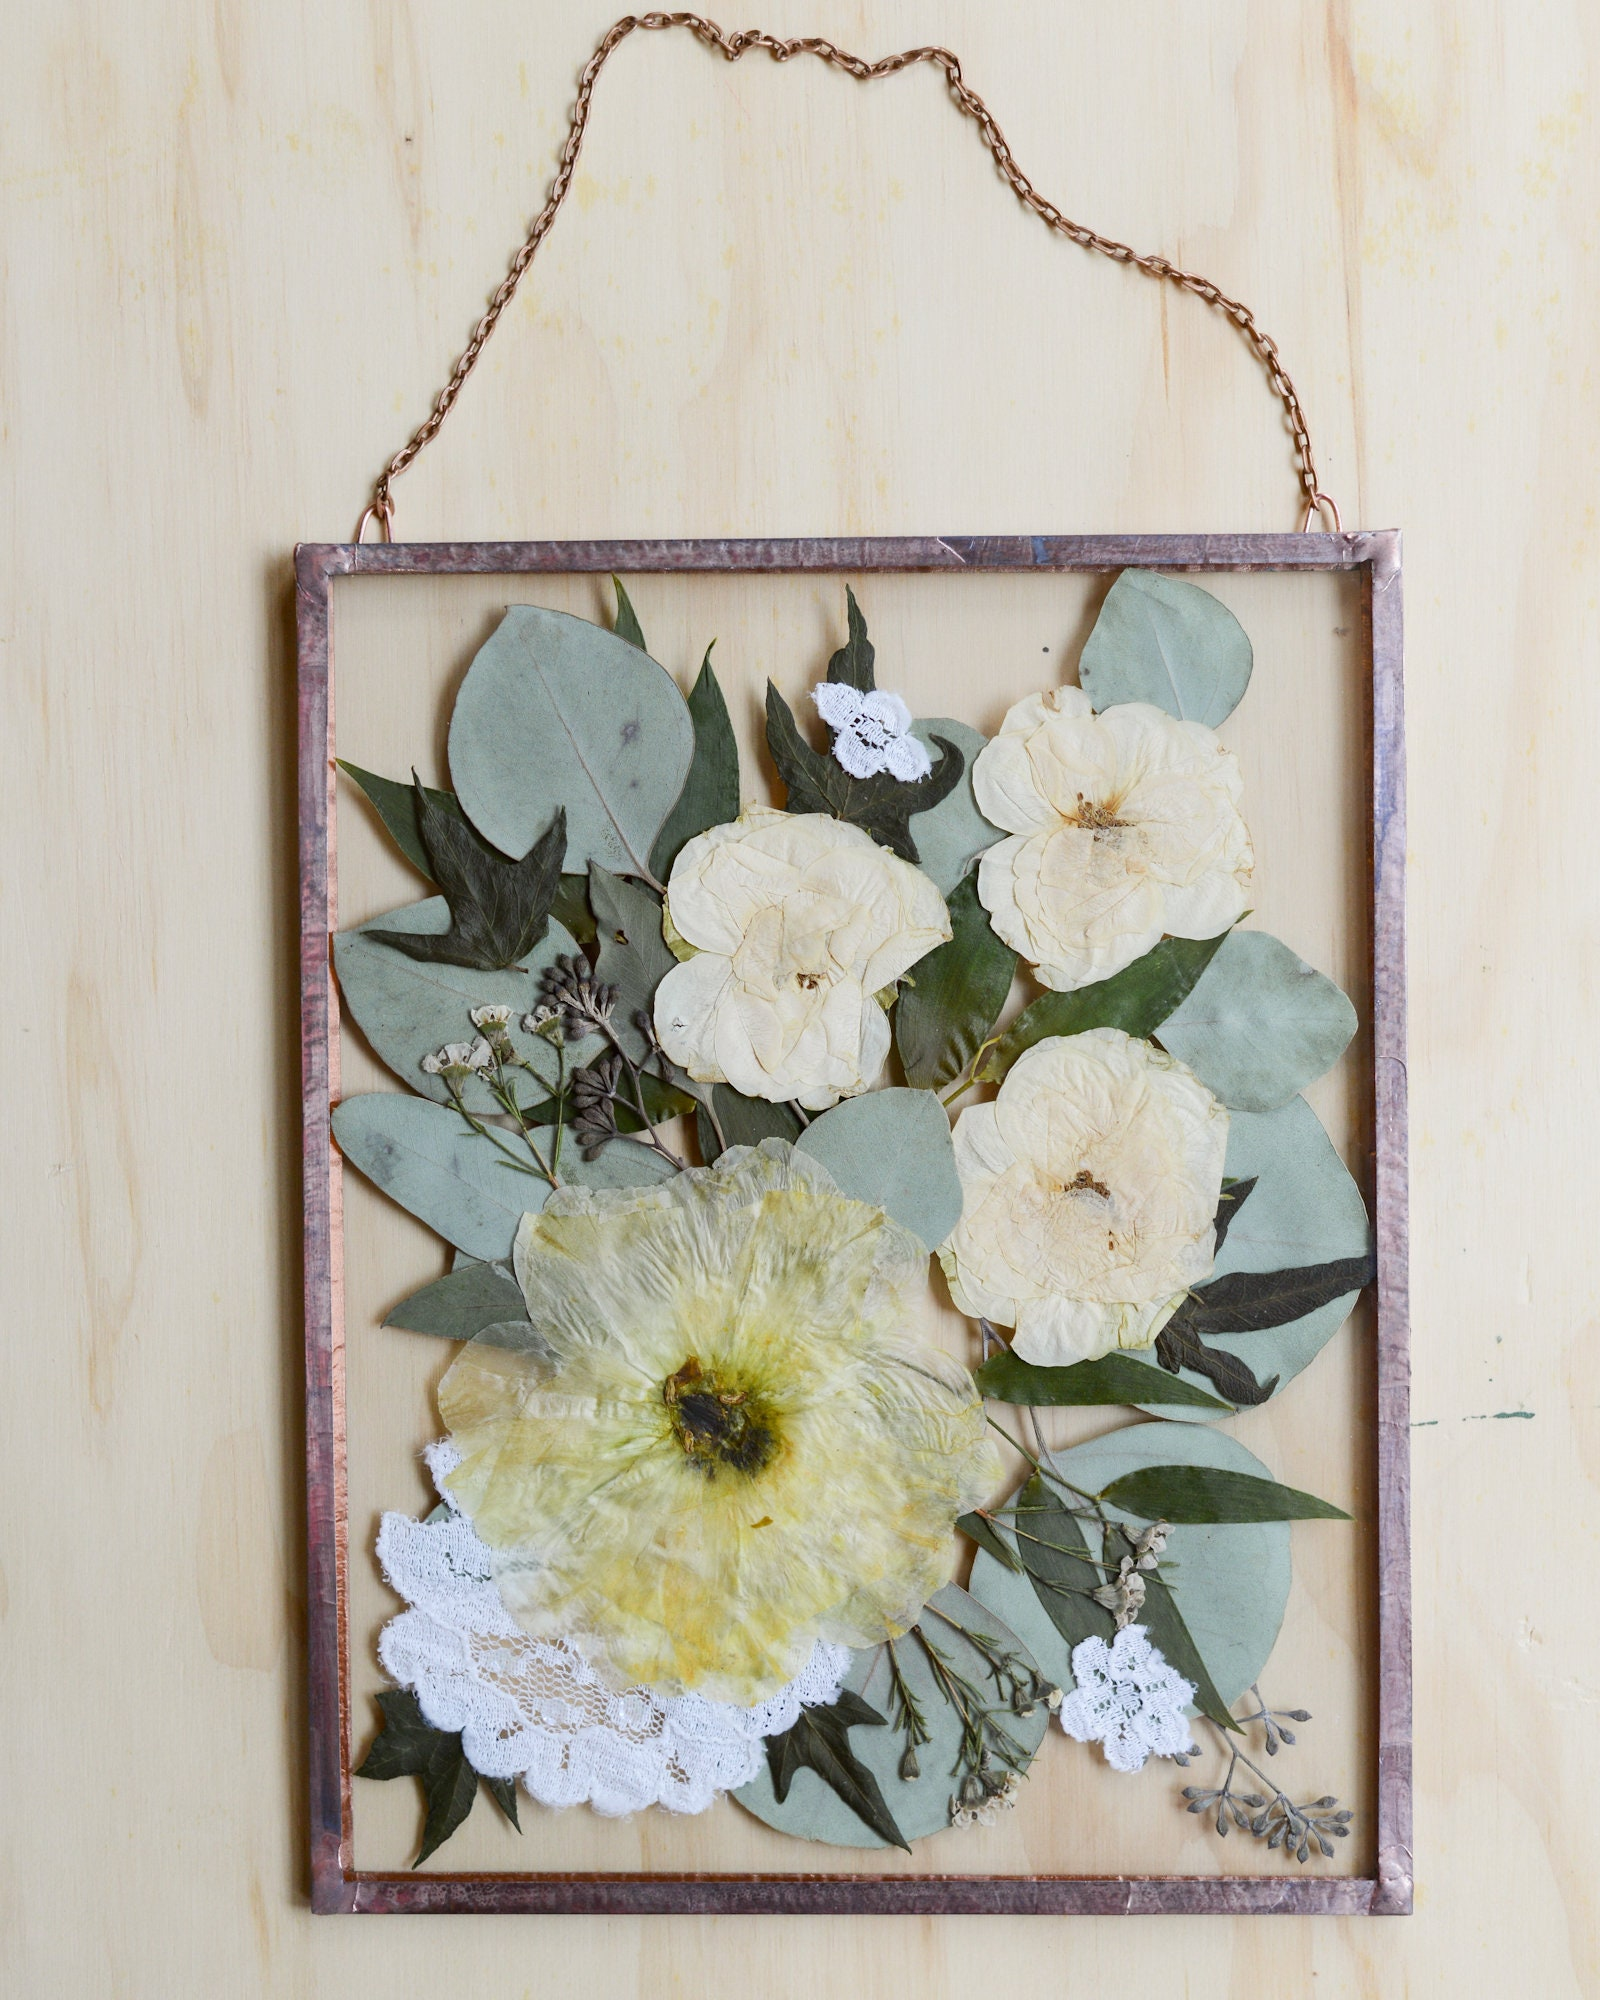 Pressed Wedding Flowers: Real Pressed Wedding Flower Wall